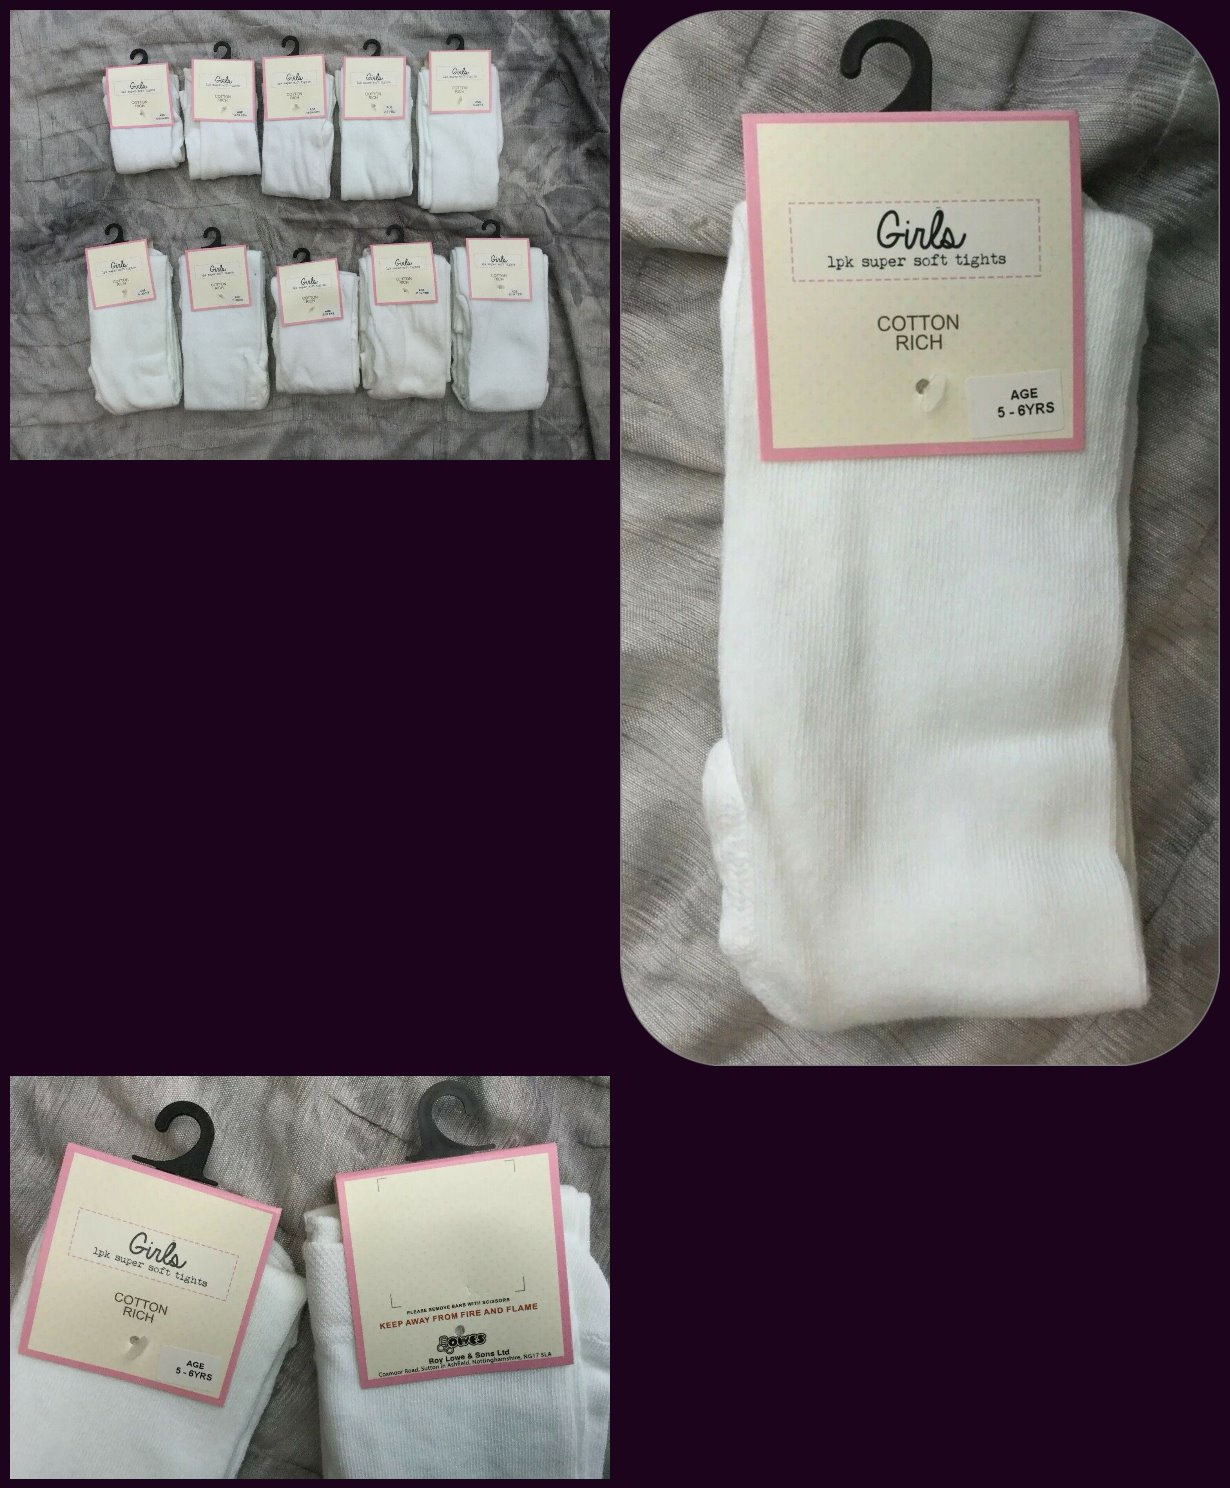 COSY age 3-4 yrs Girls White Super-Soft warm Cotton rich Tights bnwt EX-STORE 6